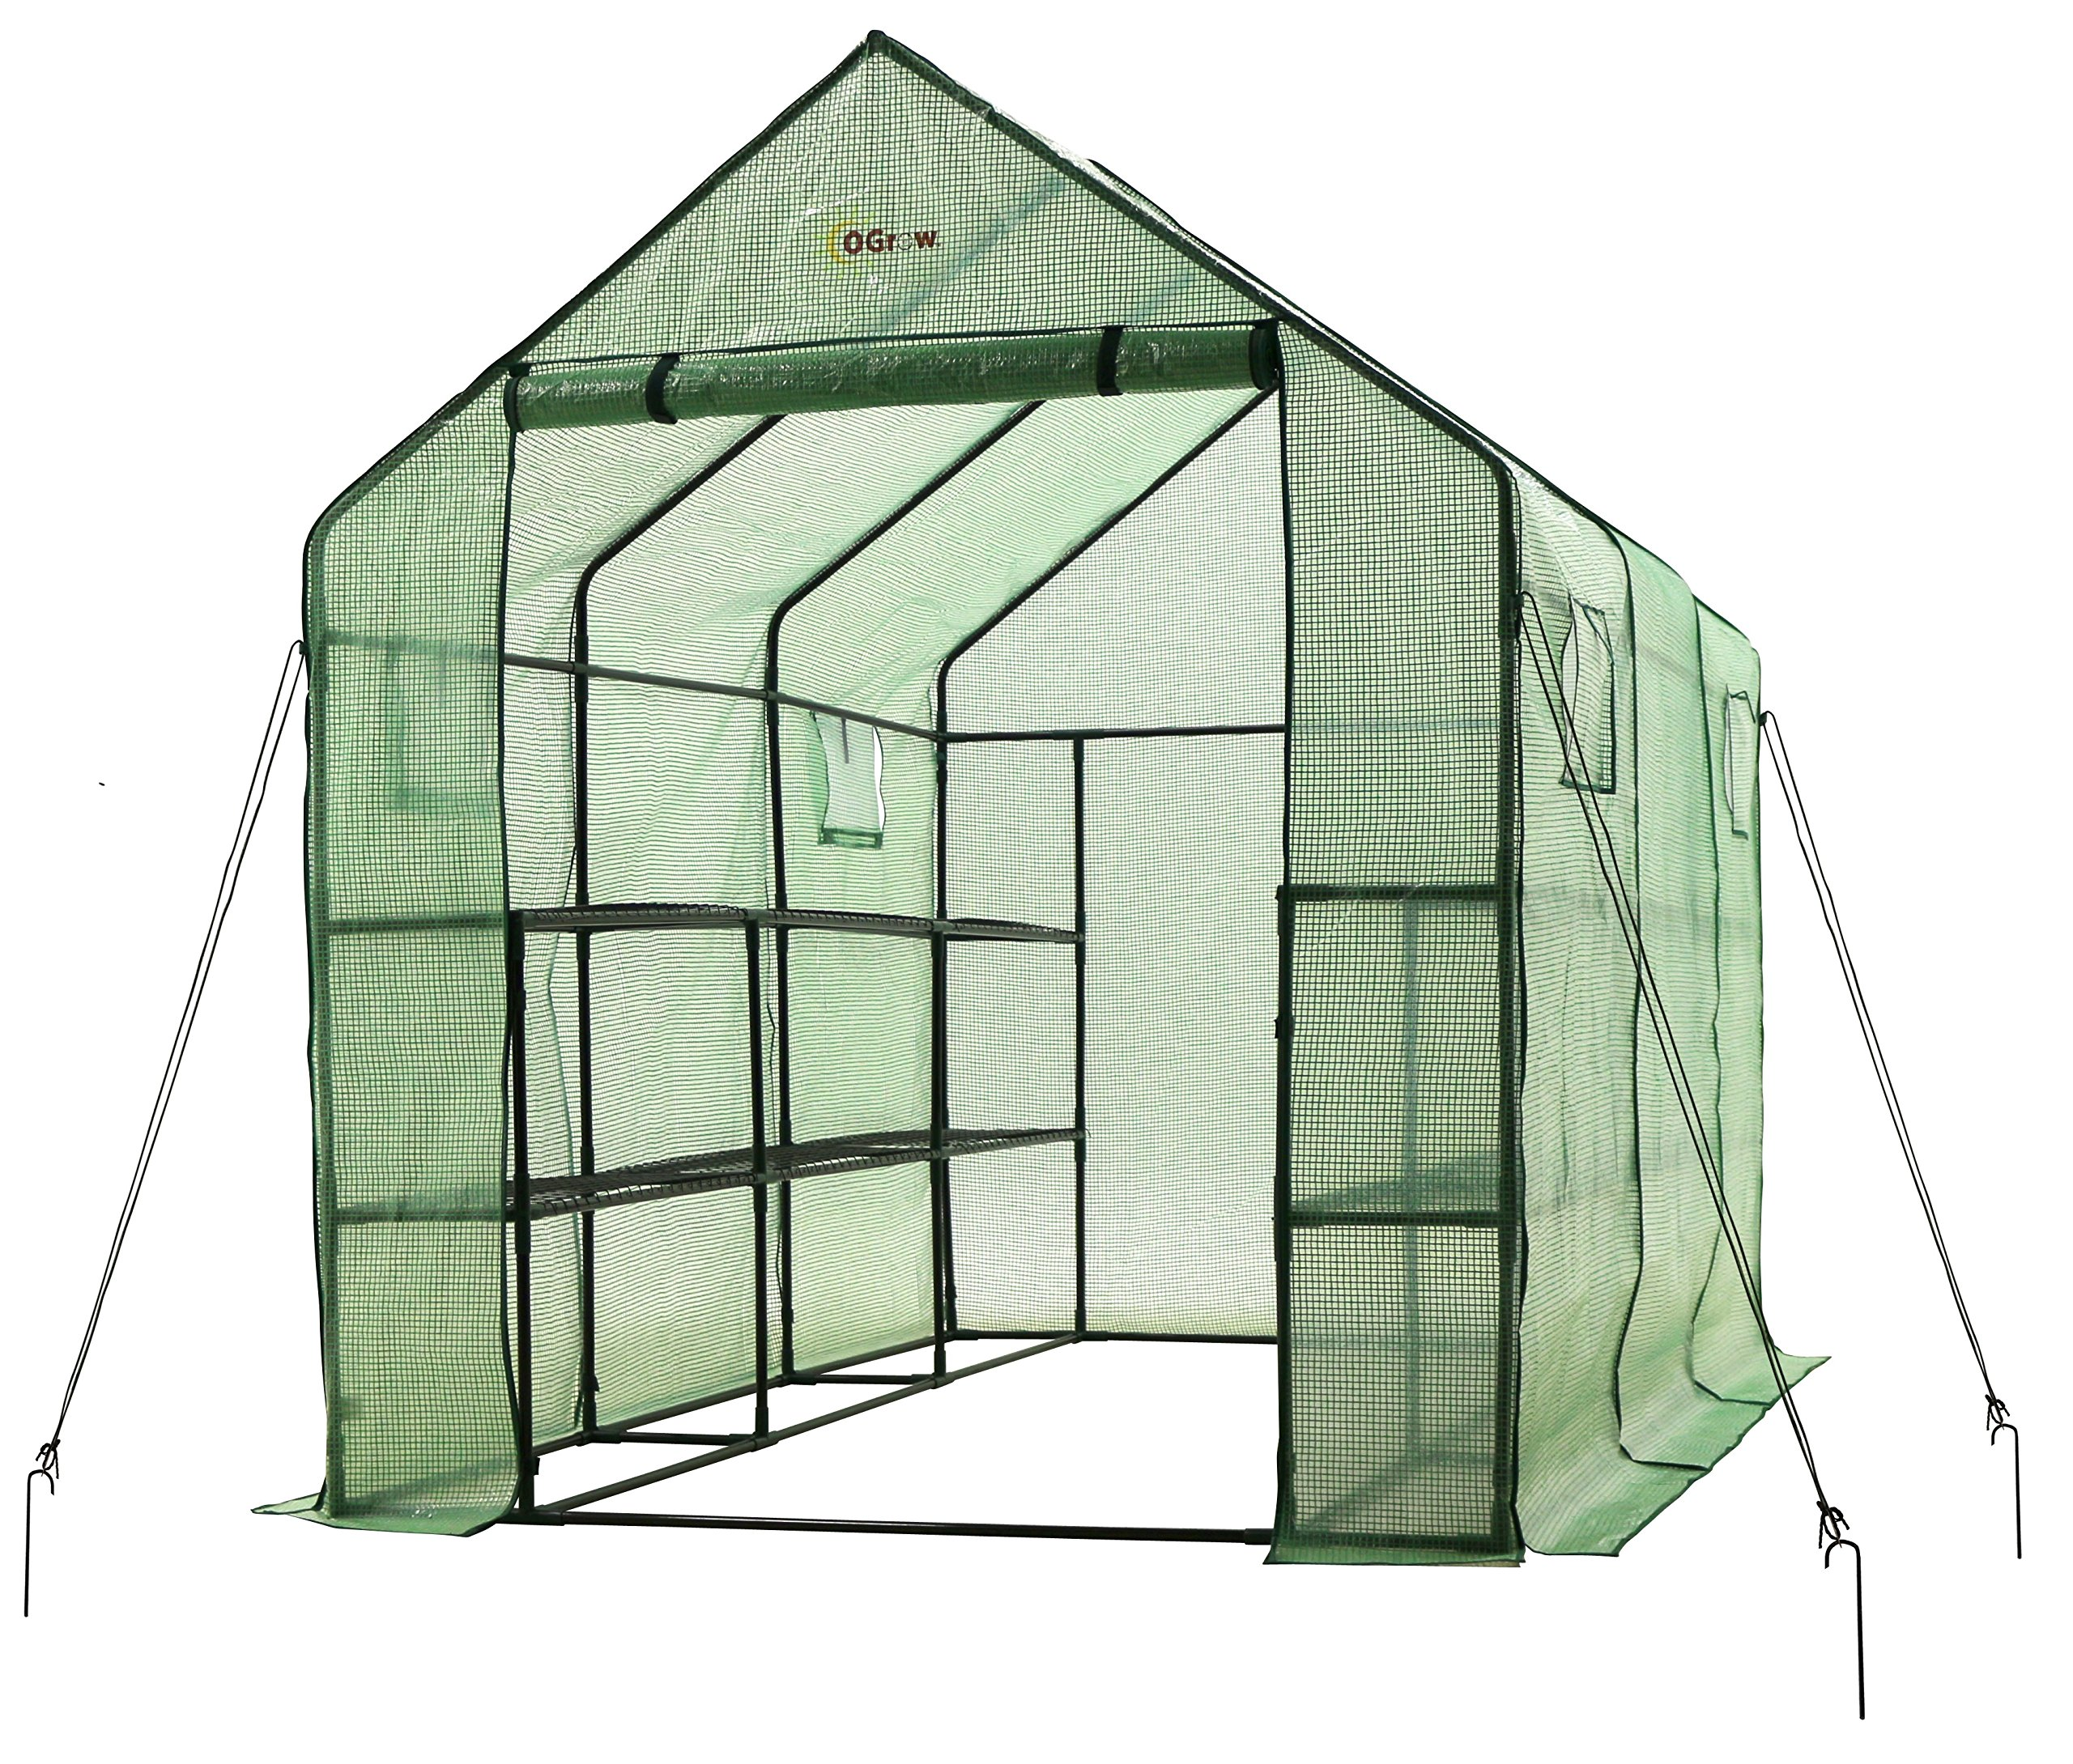 Ogrow 2 Tier 12 Shelf Portable Garden Walk-in Greenhouse, 117 x 67 x 83'', Dark Green